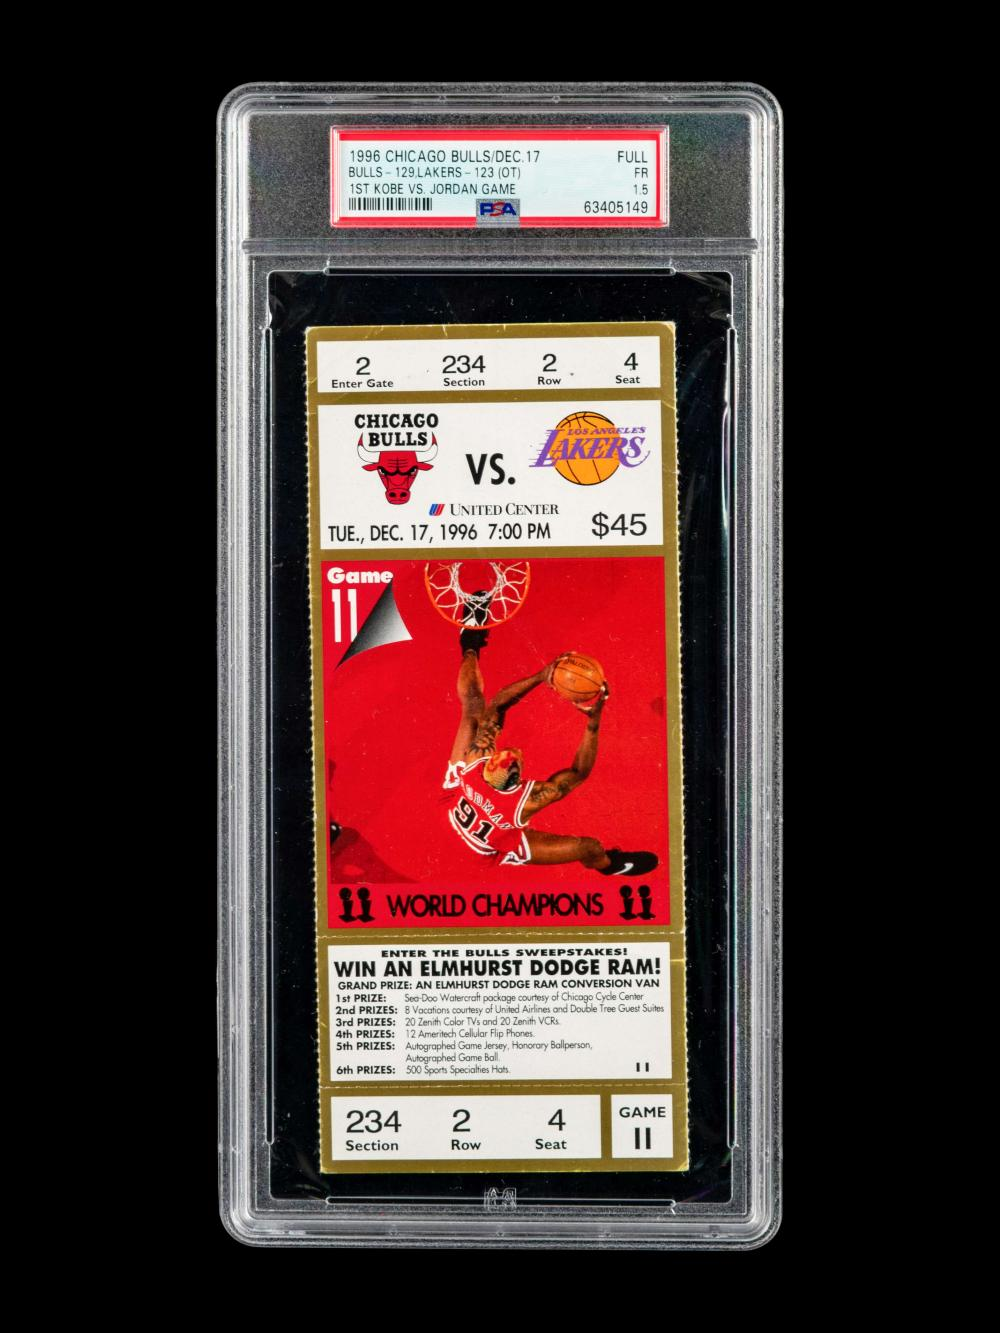 An Exceptionally Rare December 17, 1996 Chicago Bulls vs. Los Angeles Lakers Full Ticket From The First Game Between Michael Jordan and Kobe Bryant (PSA Population of Four),